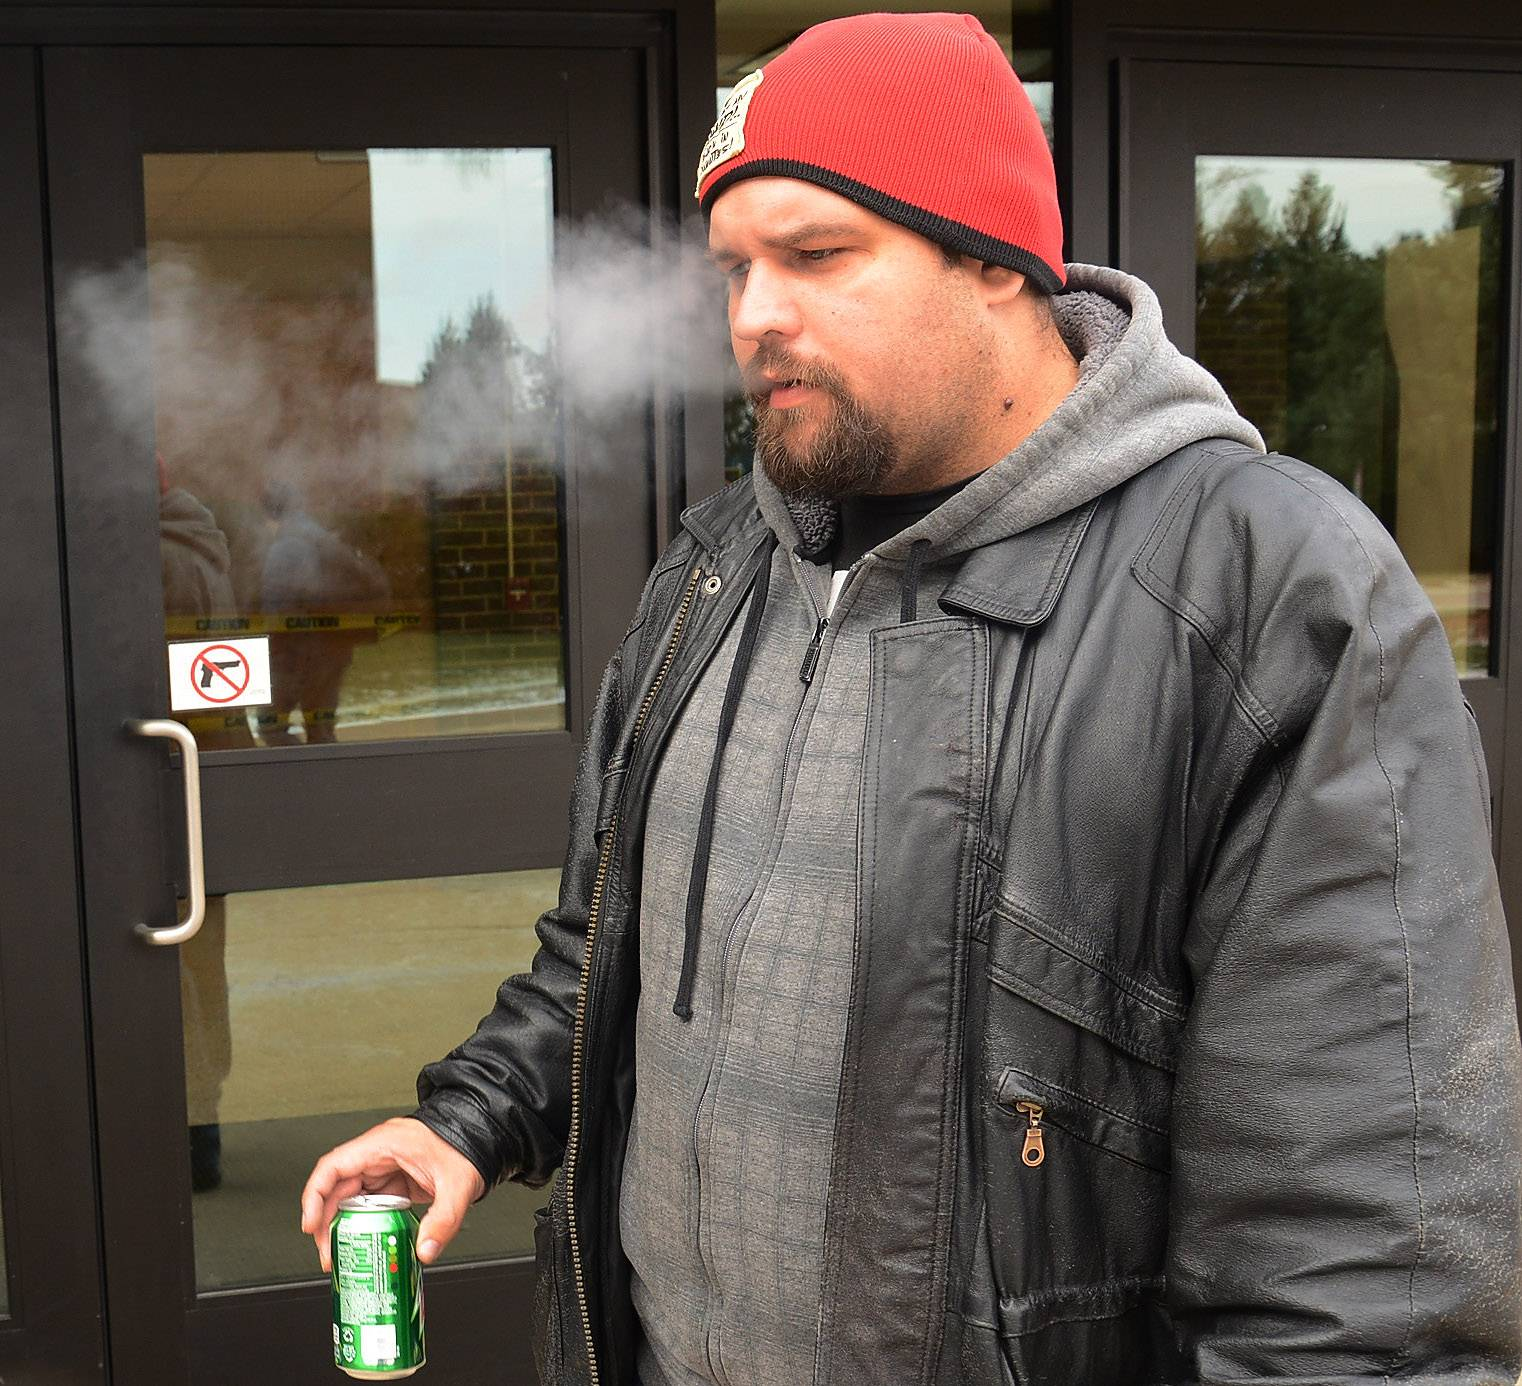 """I don't like it. It's going to irritate most of the students and faculty,"" Steven Delonka of Schaumburg said of the ban."